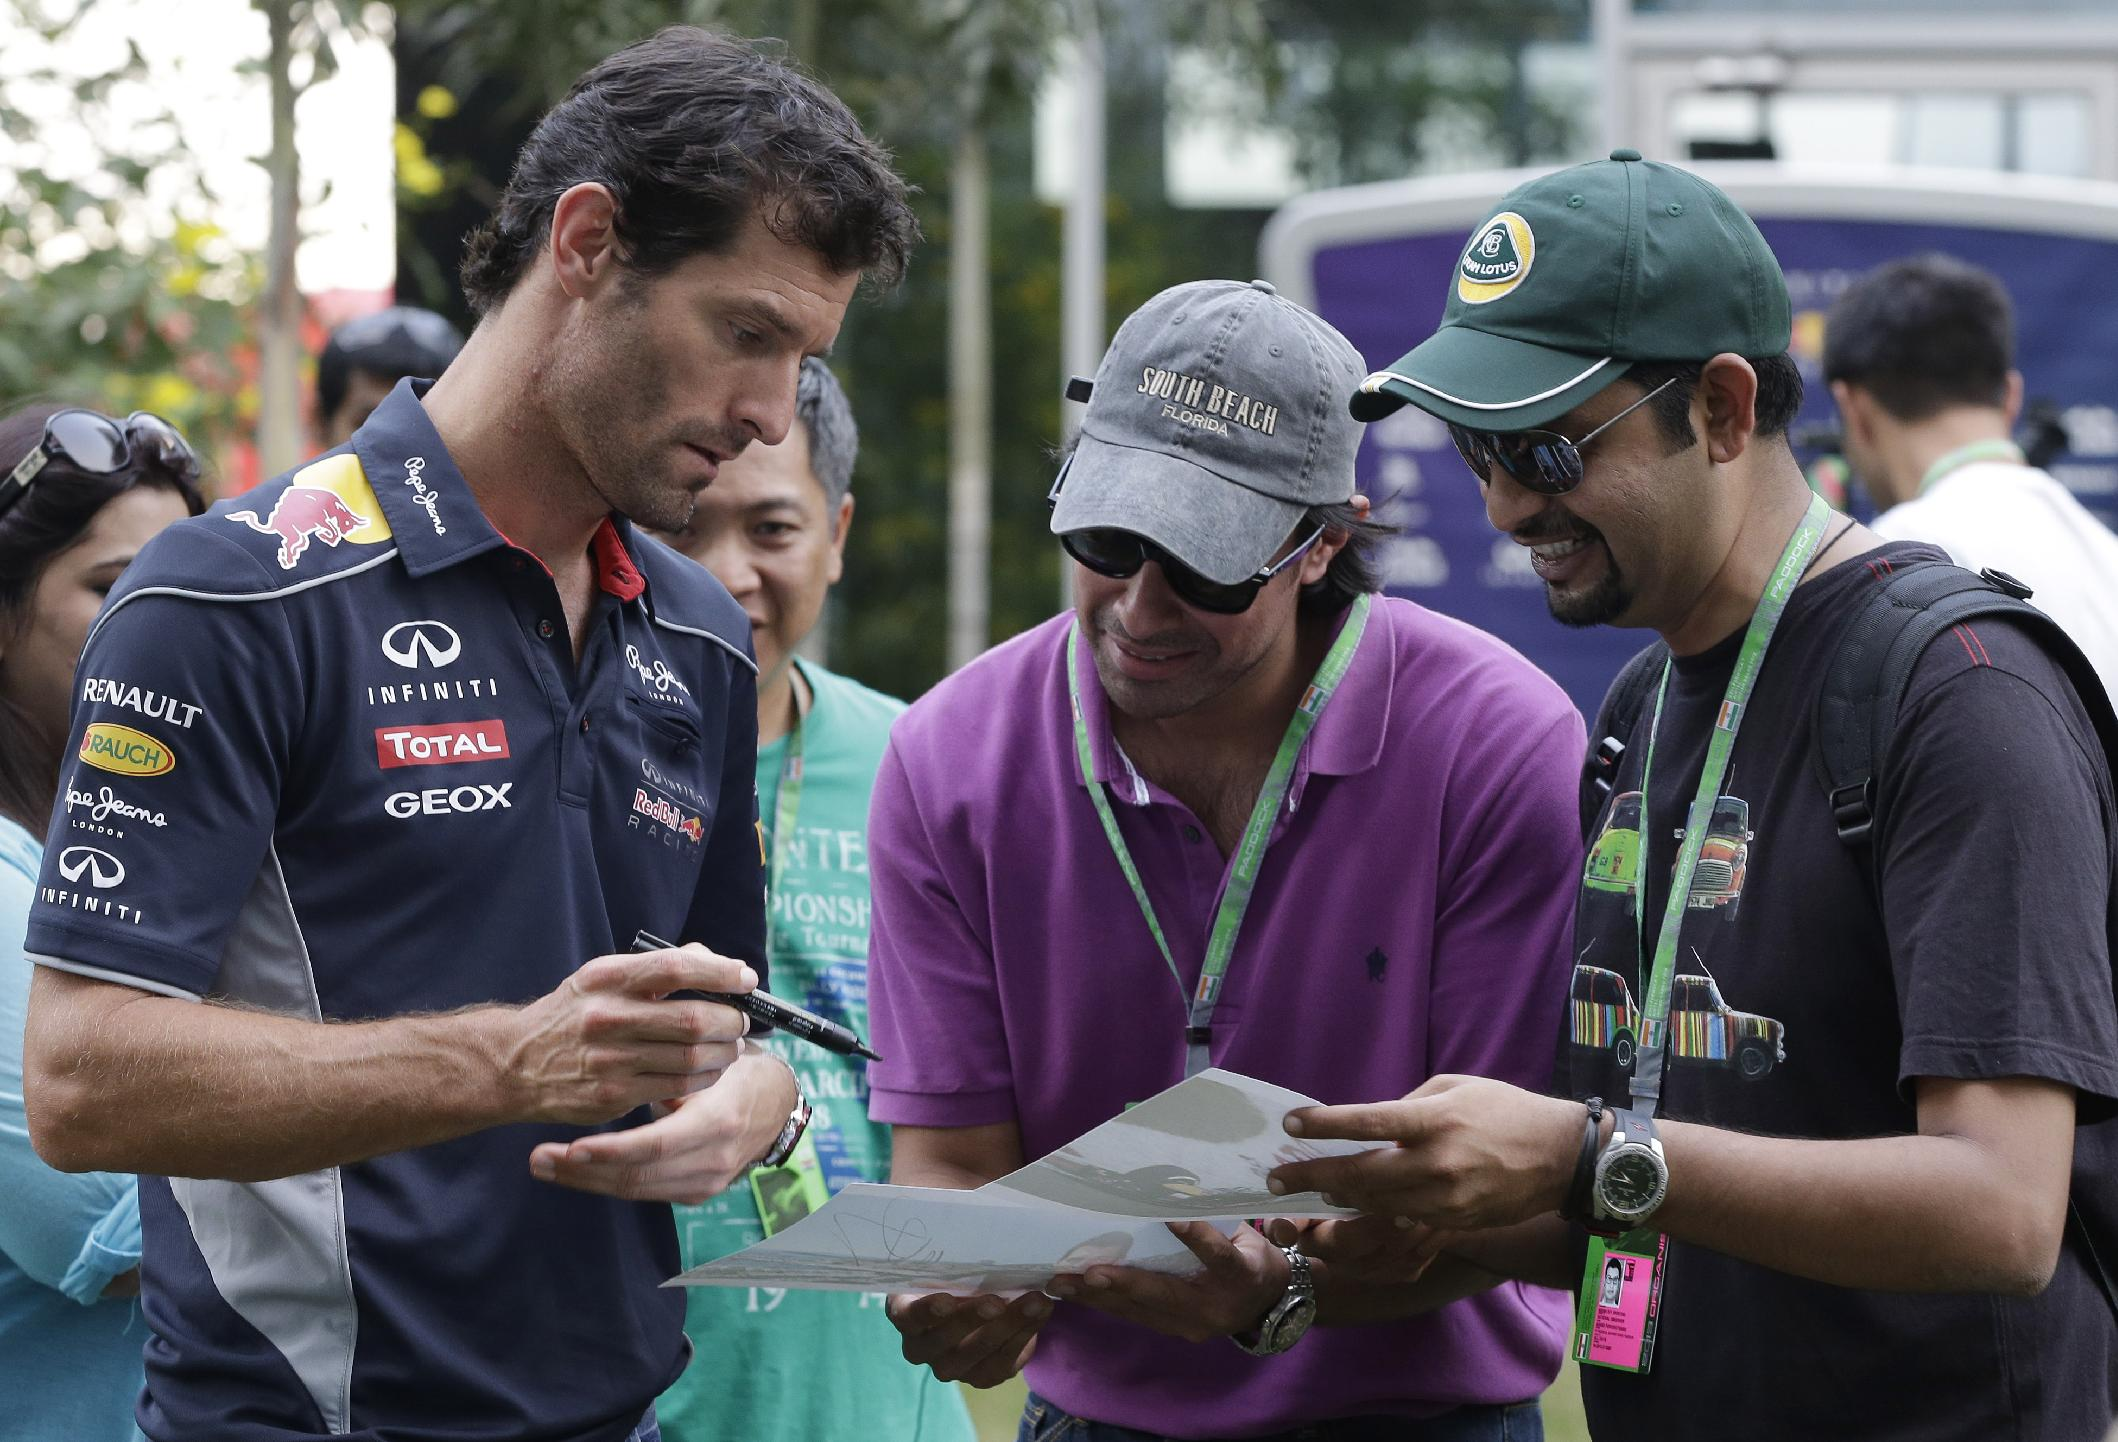 Red Bull driver Mark Webber of Australia signs his autograph for fans ahead of the Indian Formula One Grand Prix at the Buddh International Circuit in Noida, India, Thursday, Oct. 24, 2013